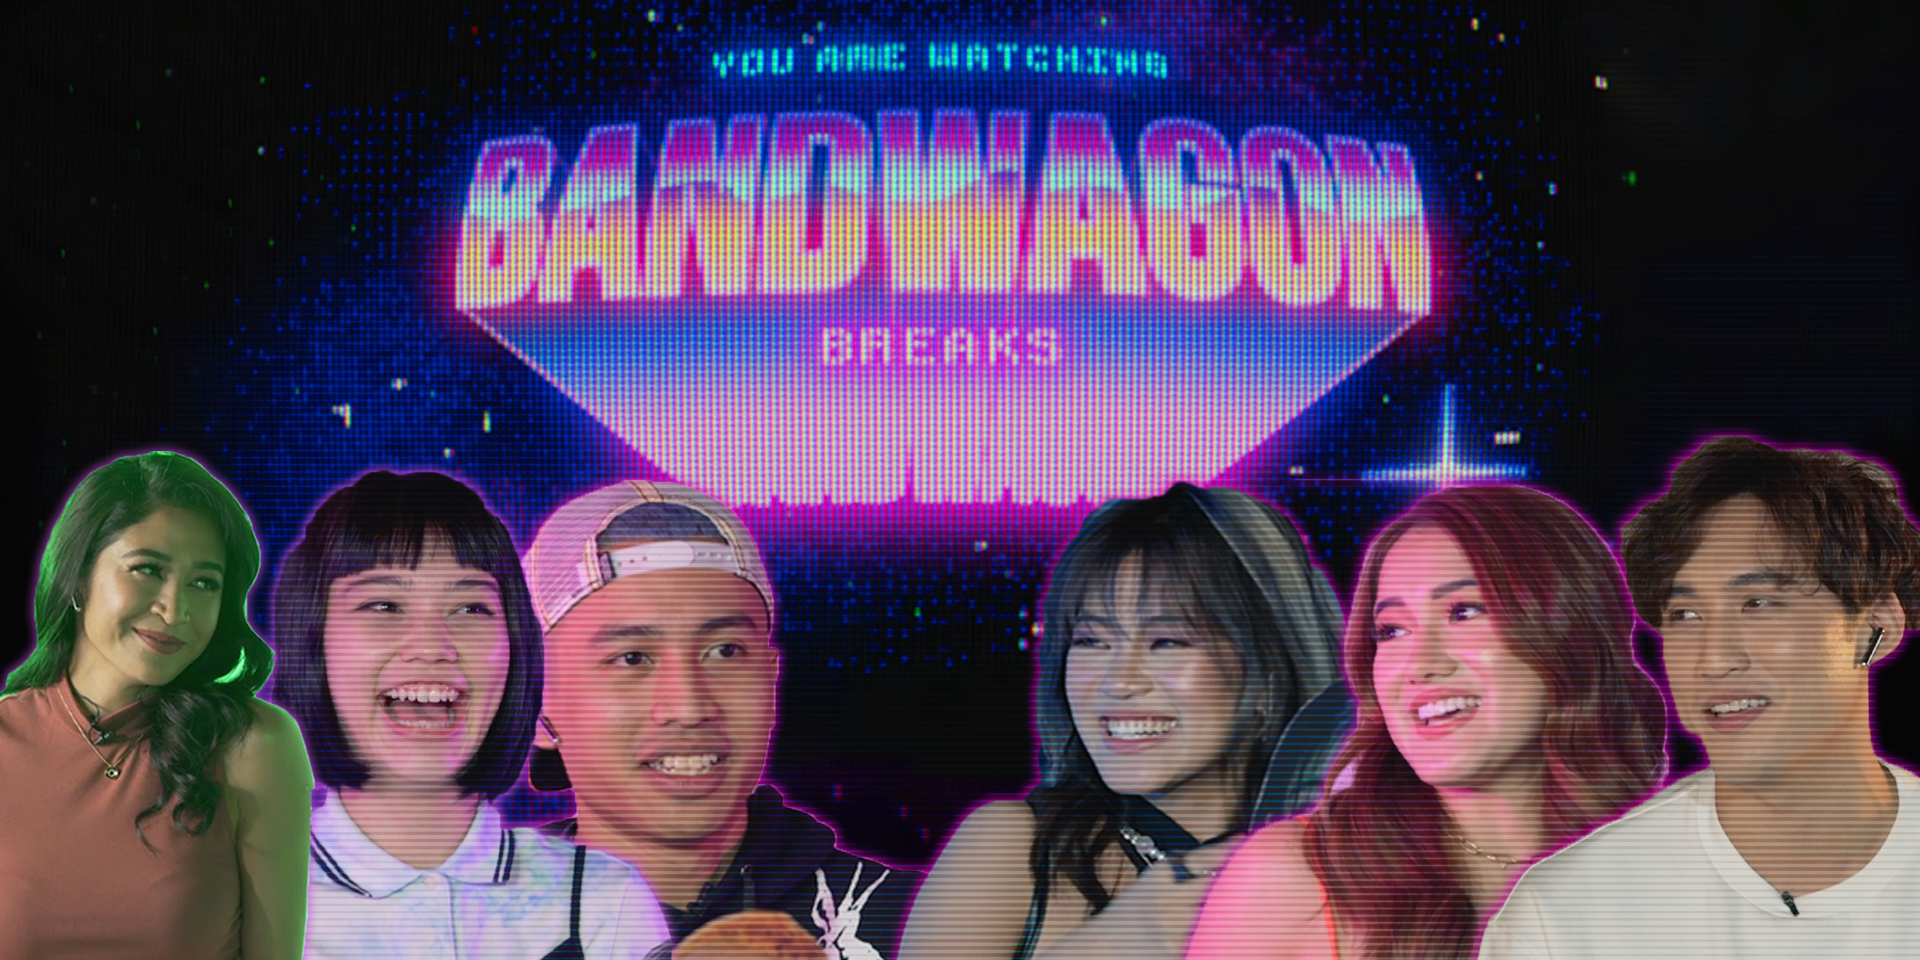 Bandwagon presents new short-form video series, 'Bandwagon Breaks', to entertain and promote artists from Singapore